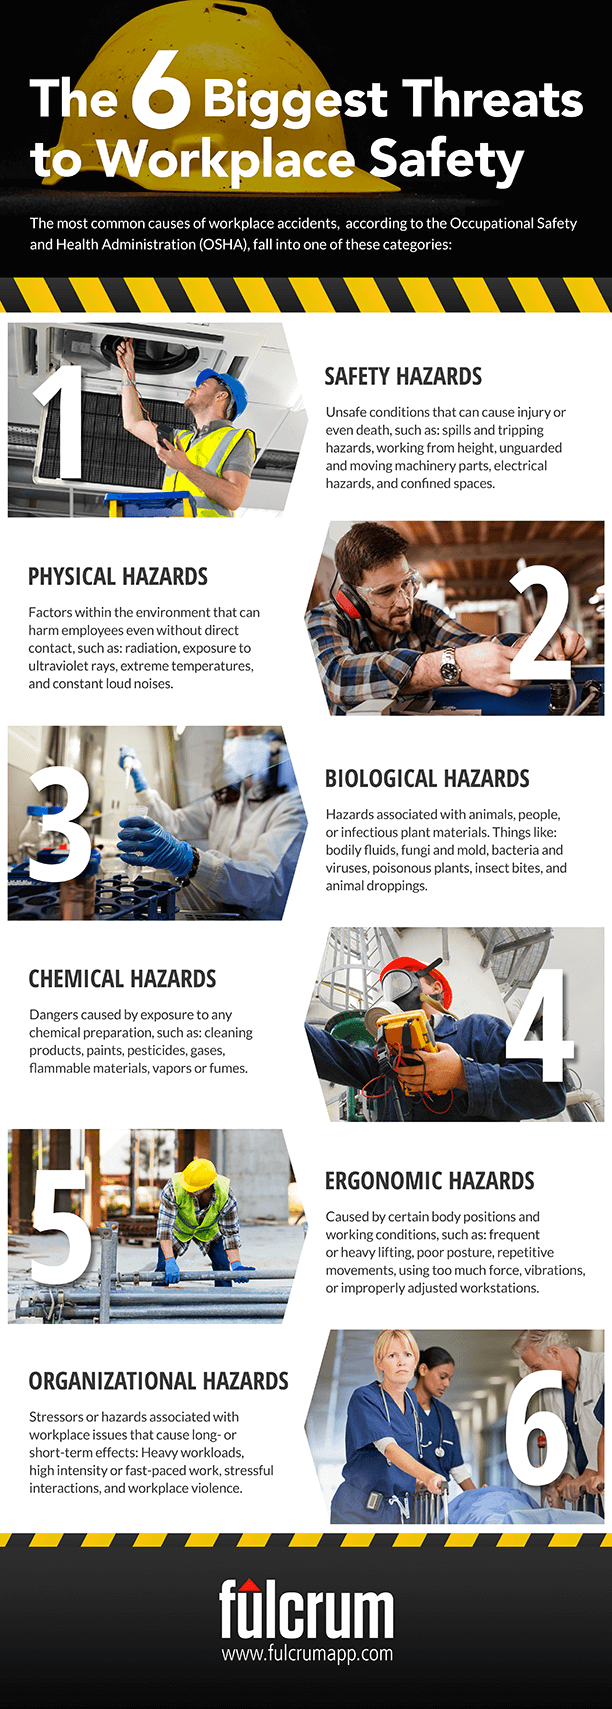 The 6 Biggest Threats to Workplace Safety infographic